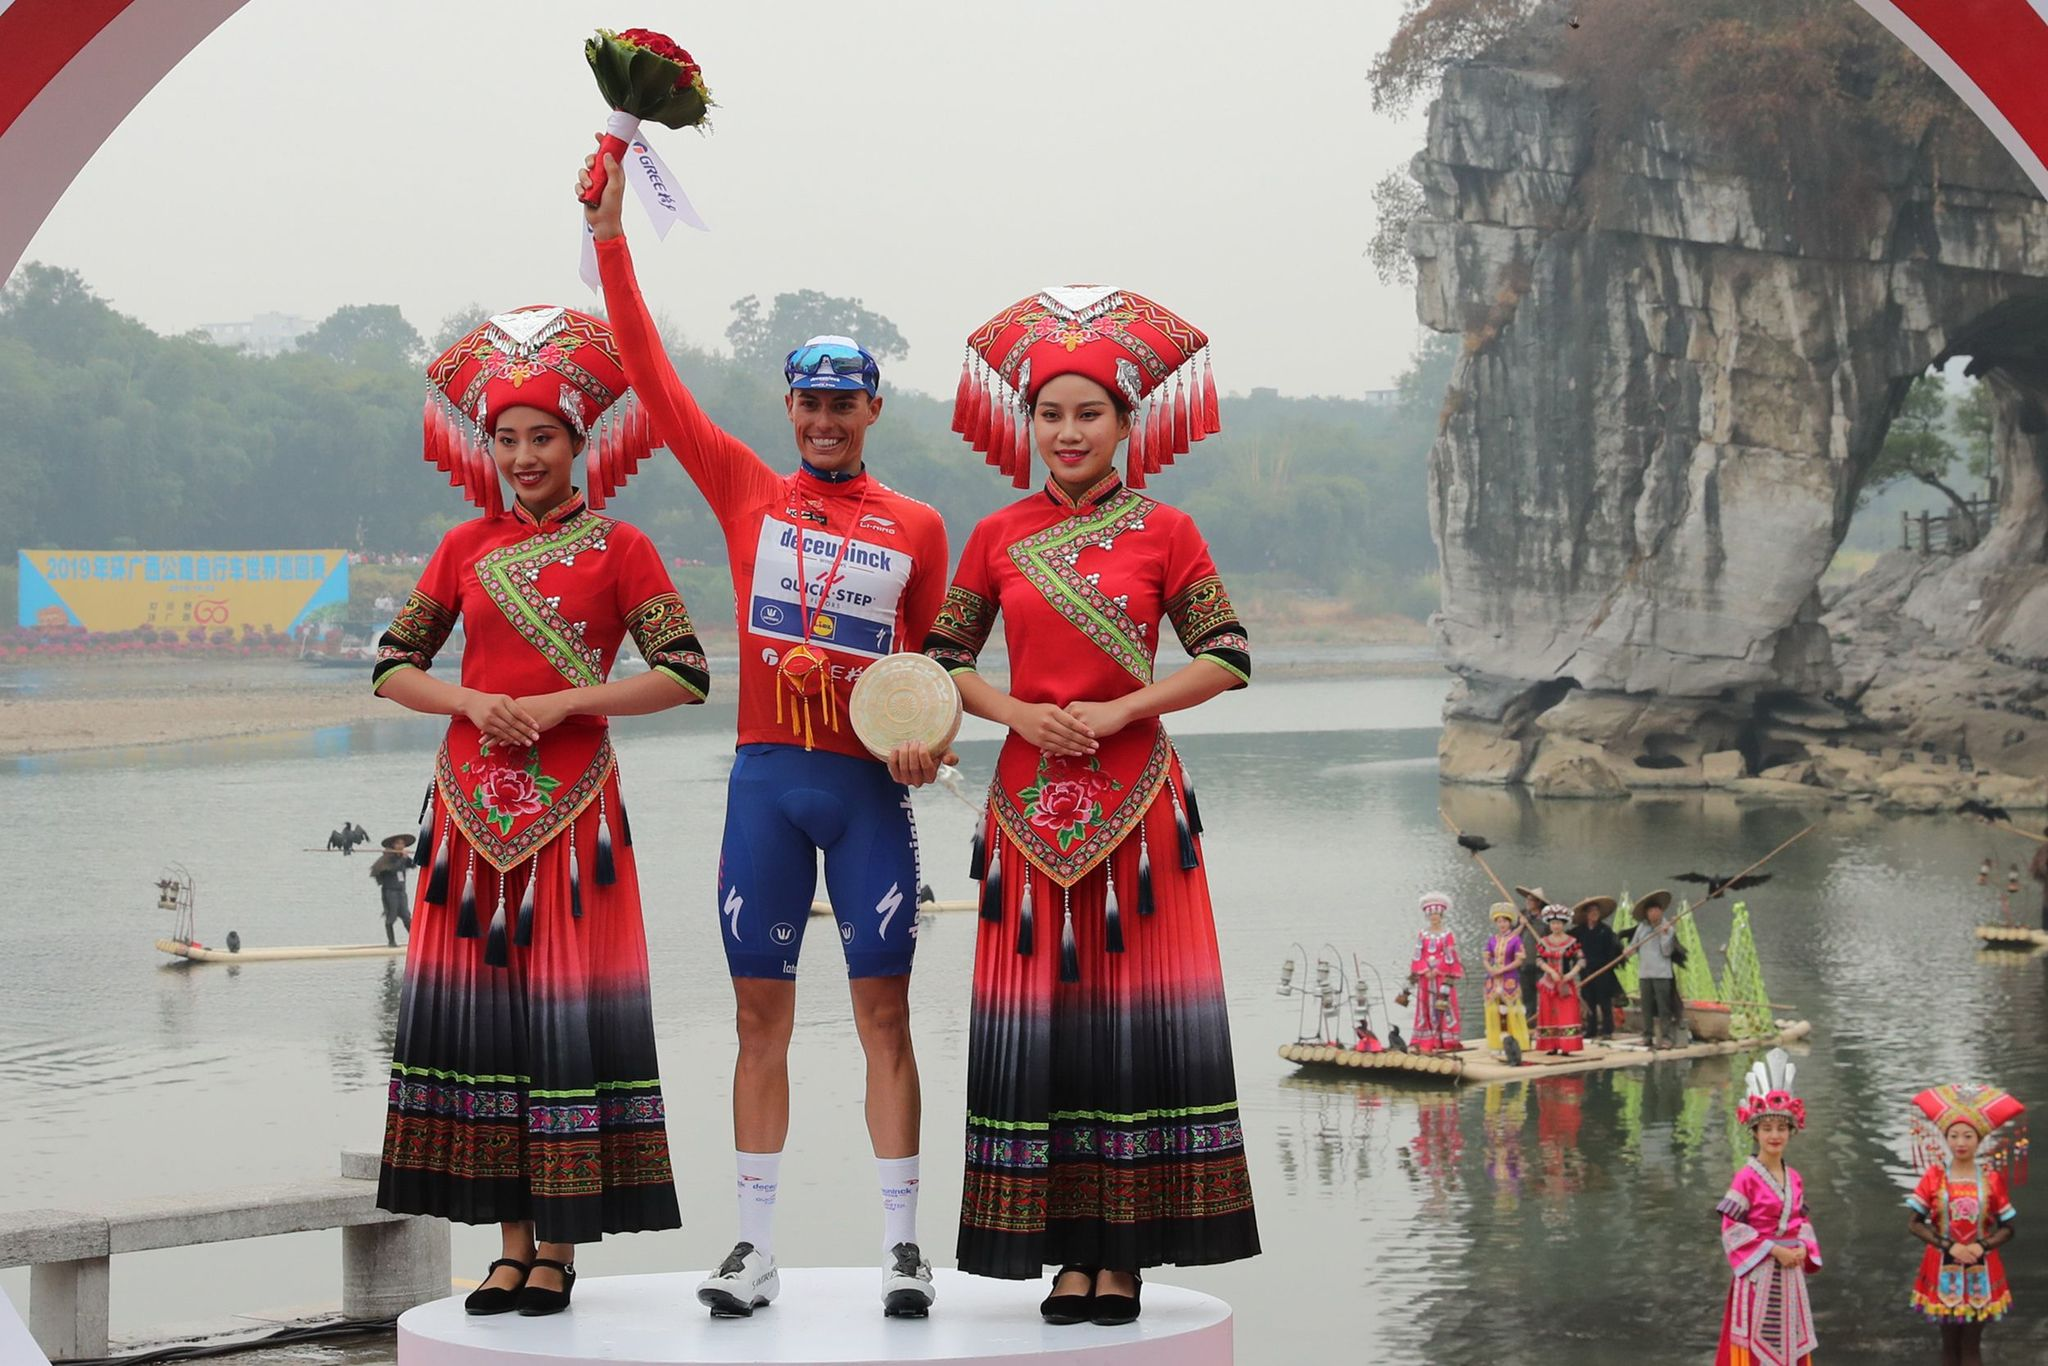 <HIT>Enric</HIT><HIT>Mas</HIT> of Spain celebrates on the podium after winning the Tour of Guangxi cycling race in Guilin, in Chinas southern Guangxi province on October 22, 2019. (Photo by STR / AFP) / China OUT